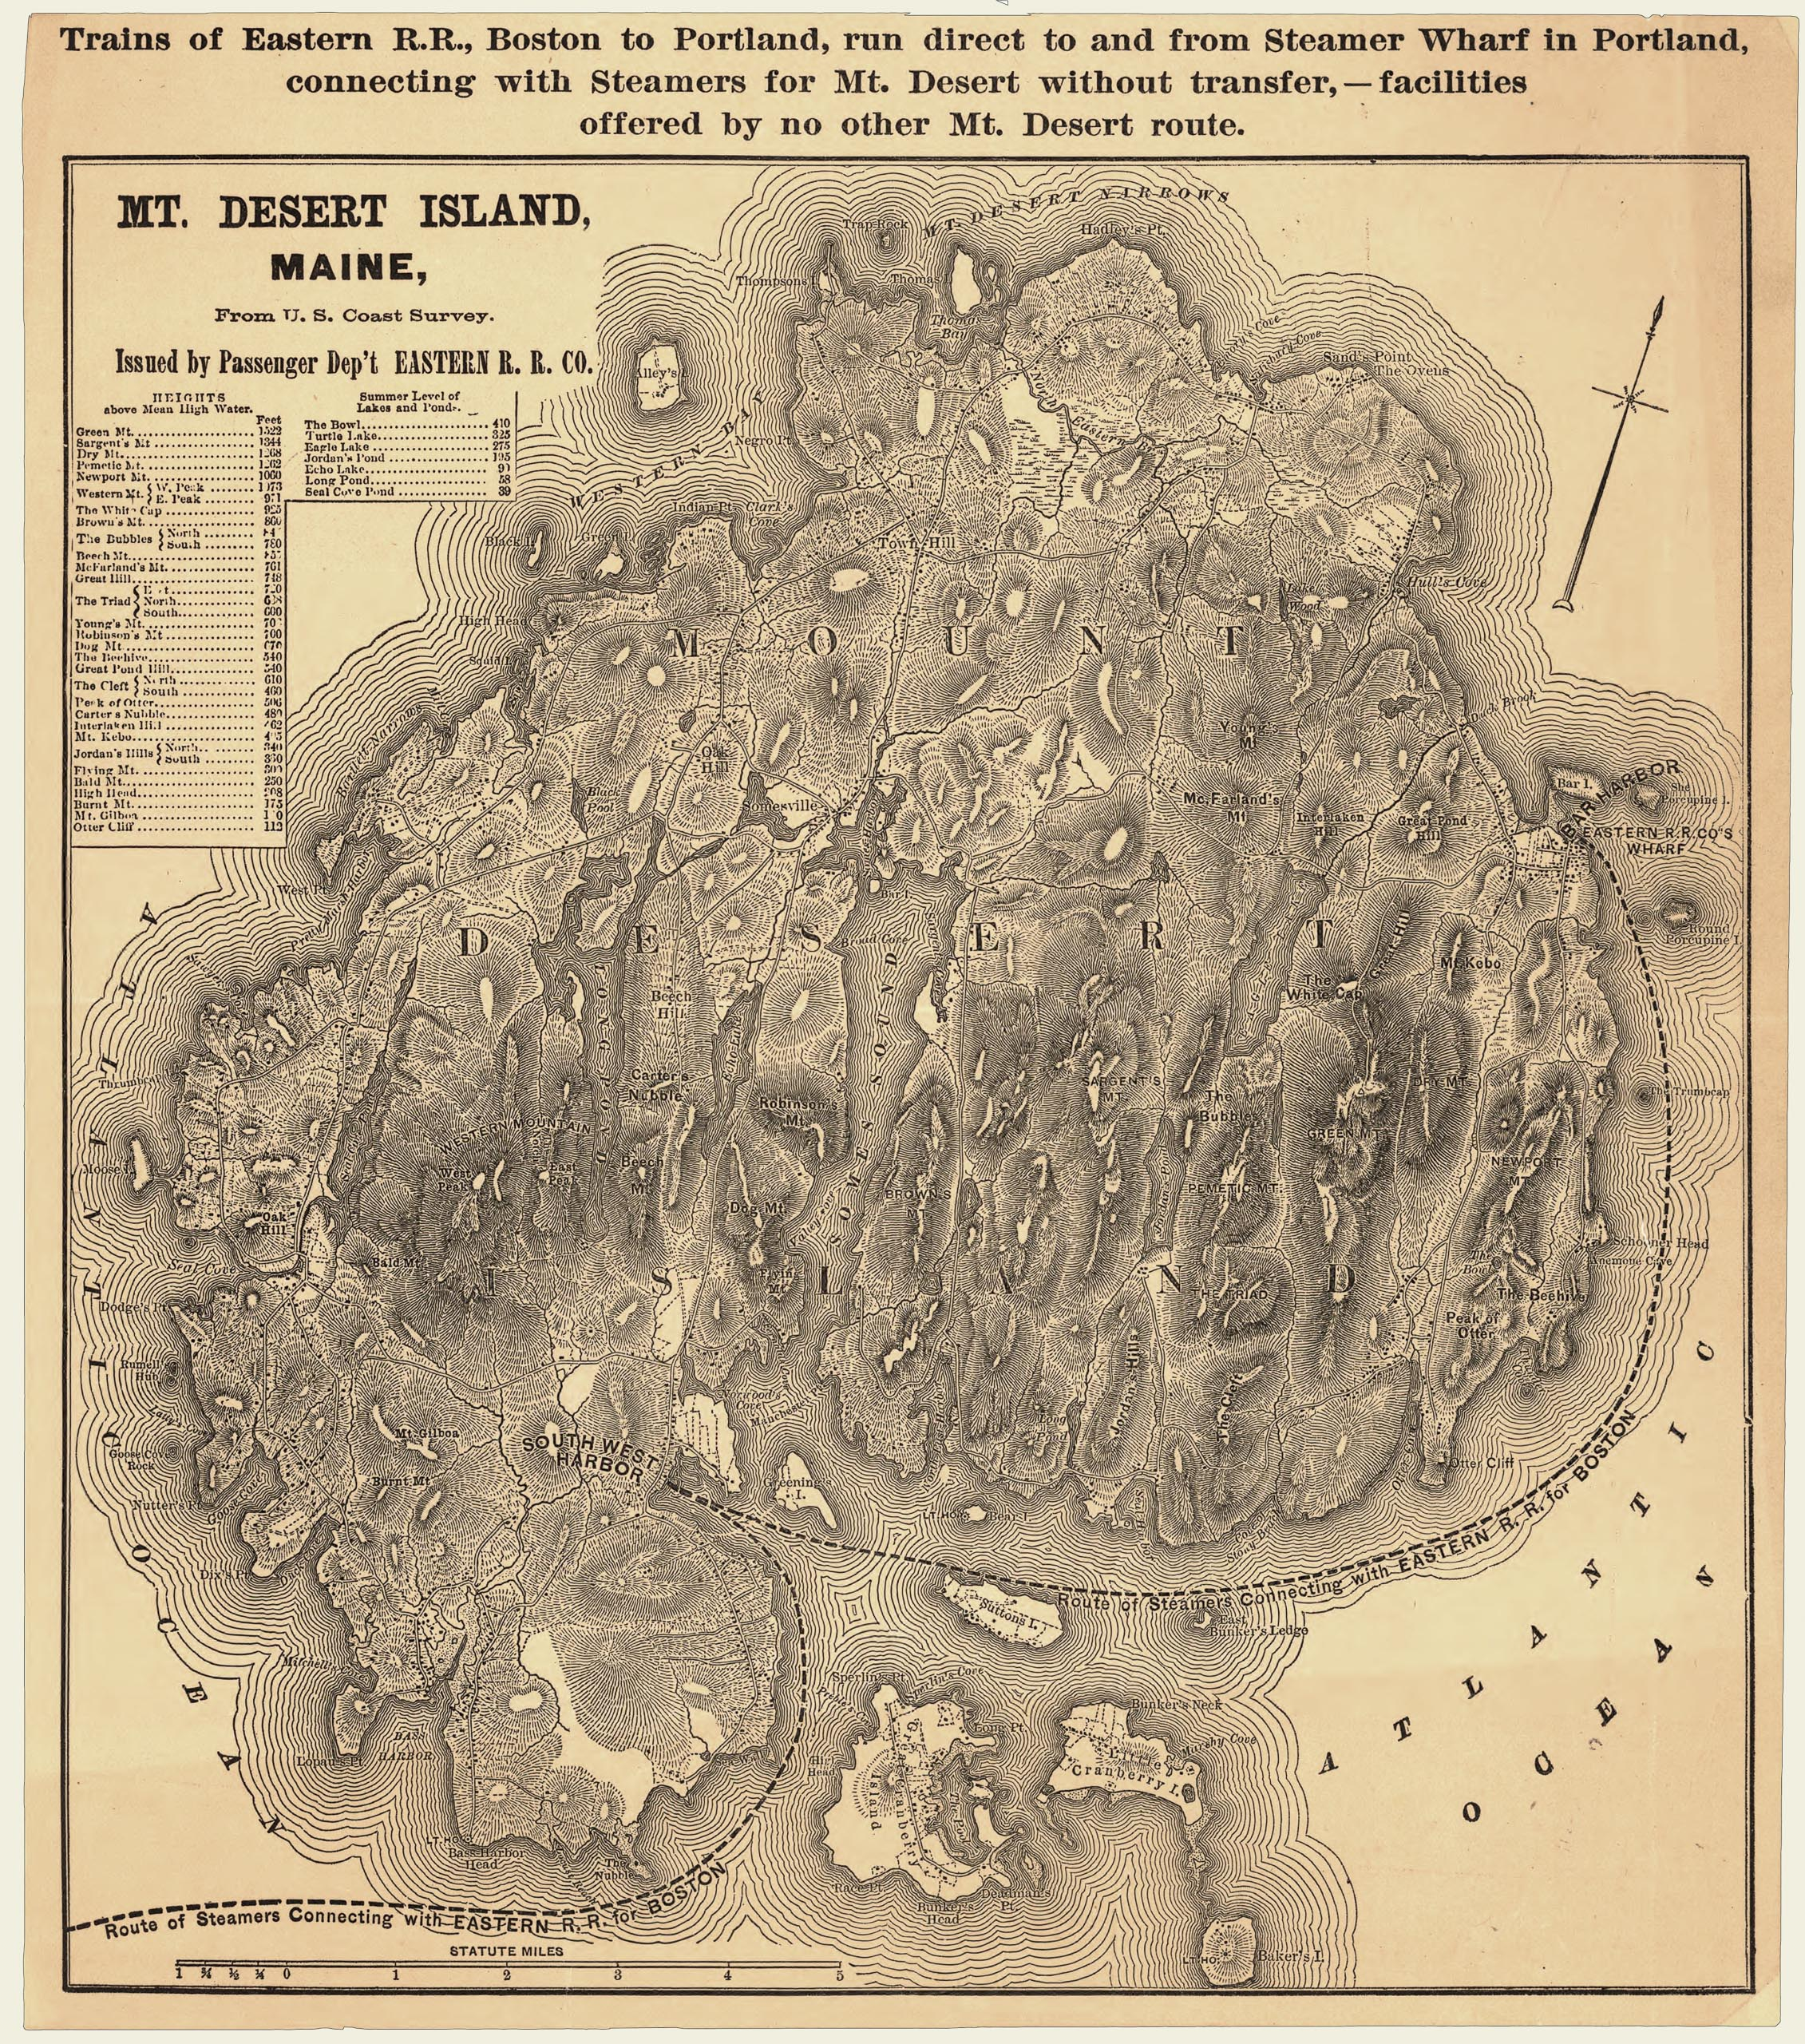 1880 Map Showing Route of Steamers Connecting Mount Desert Island with Eastern R.R. for Boston